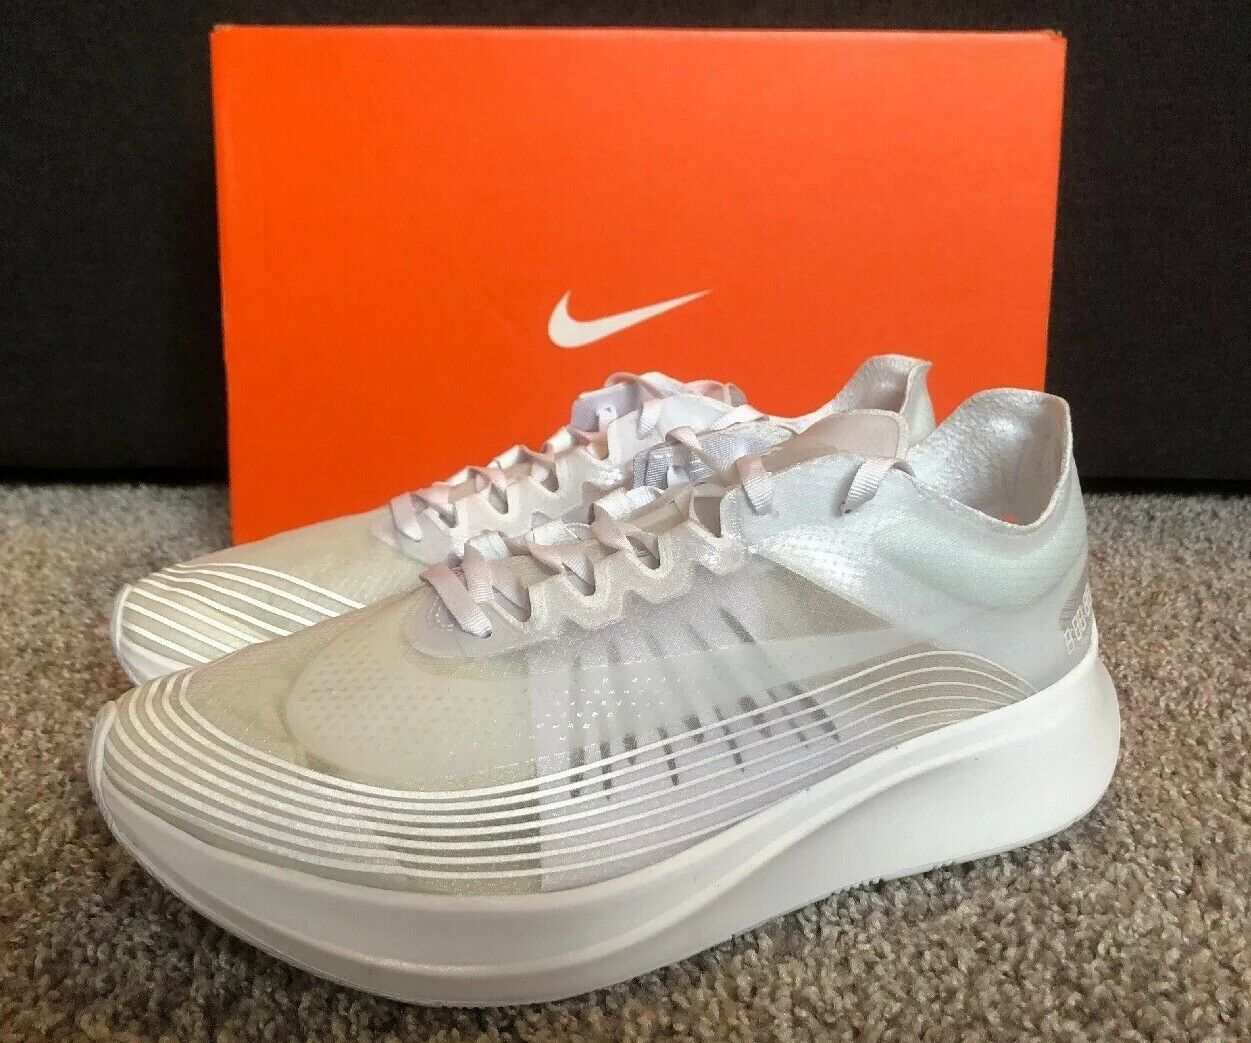 Nike Zoom Fly SP NA Mens Running shoes (BQ7024-100) White White Summit Size 10.5